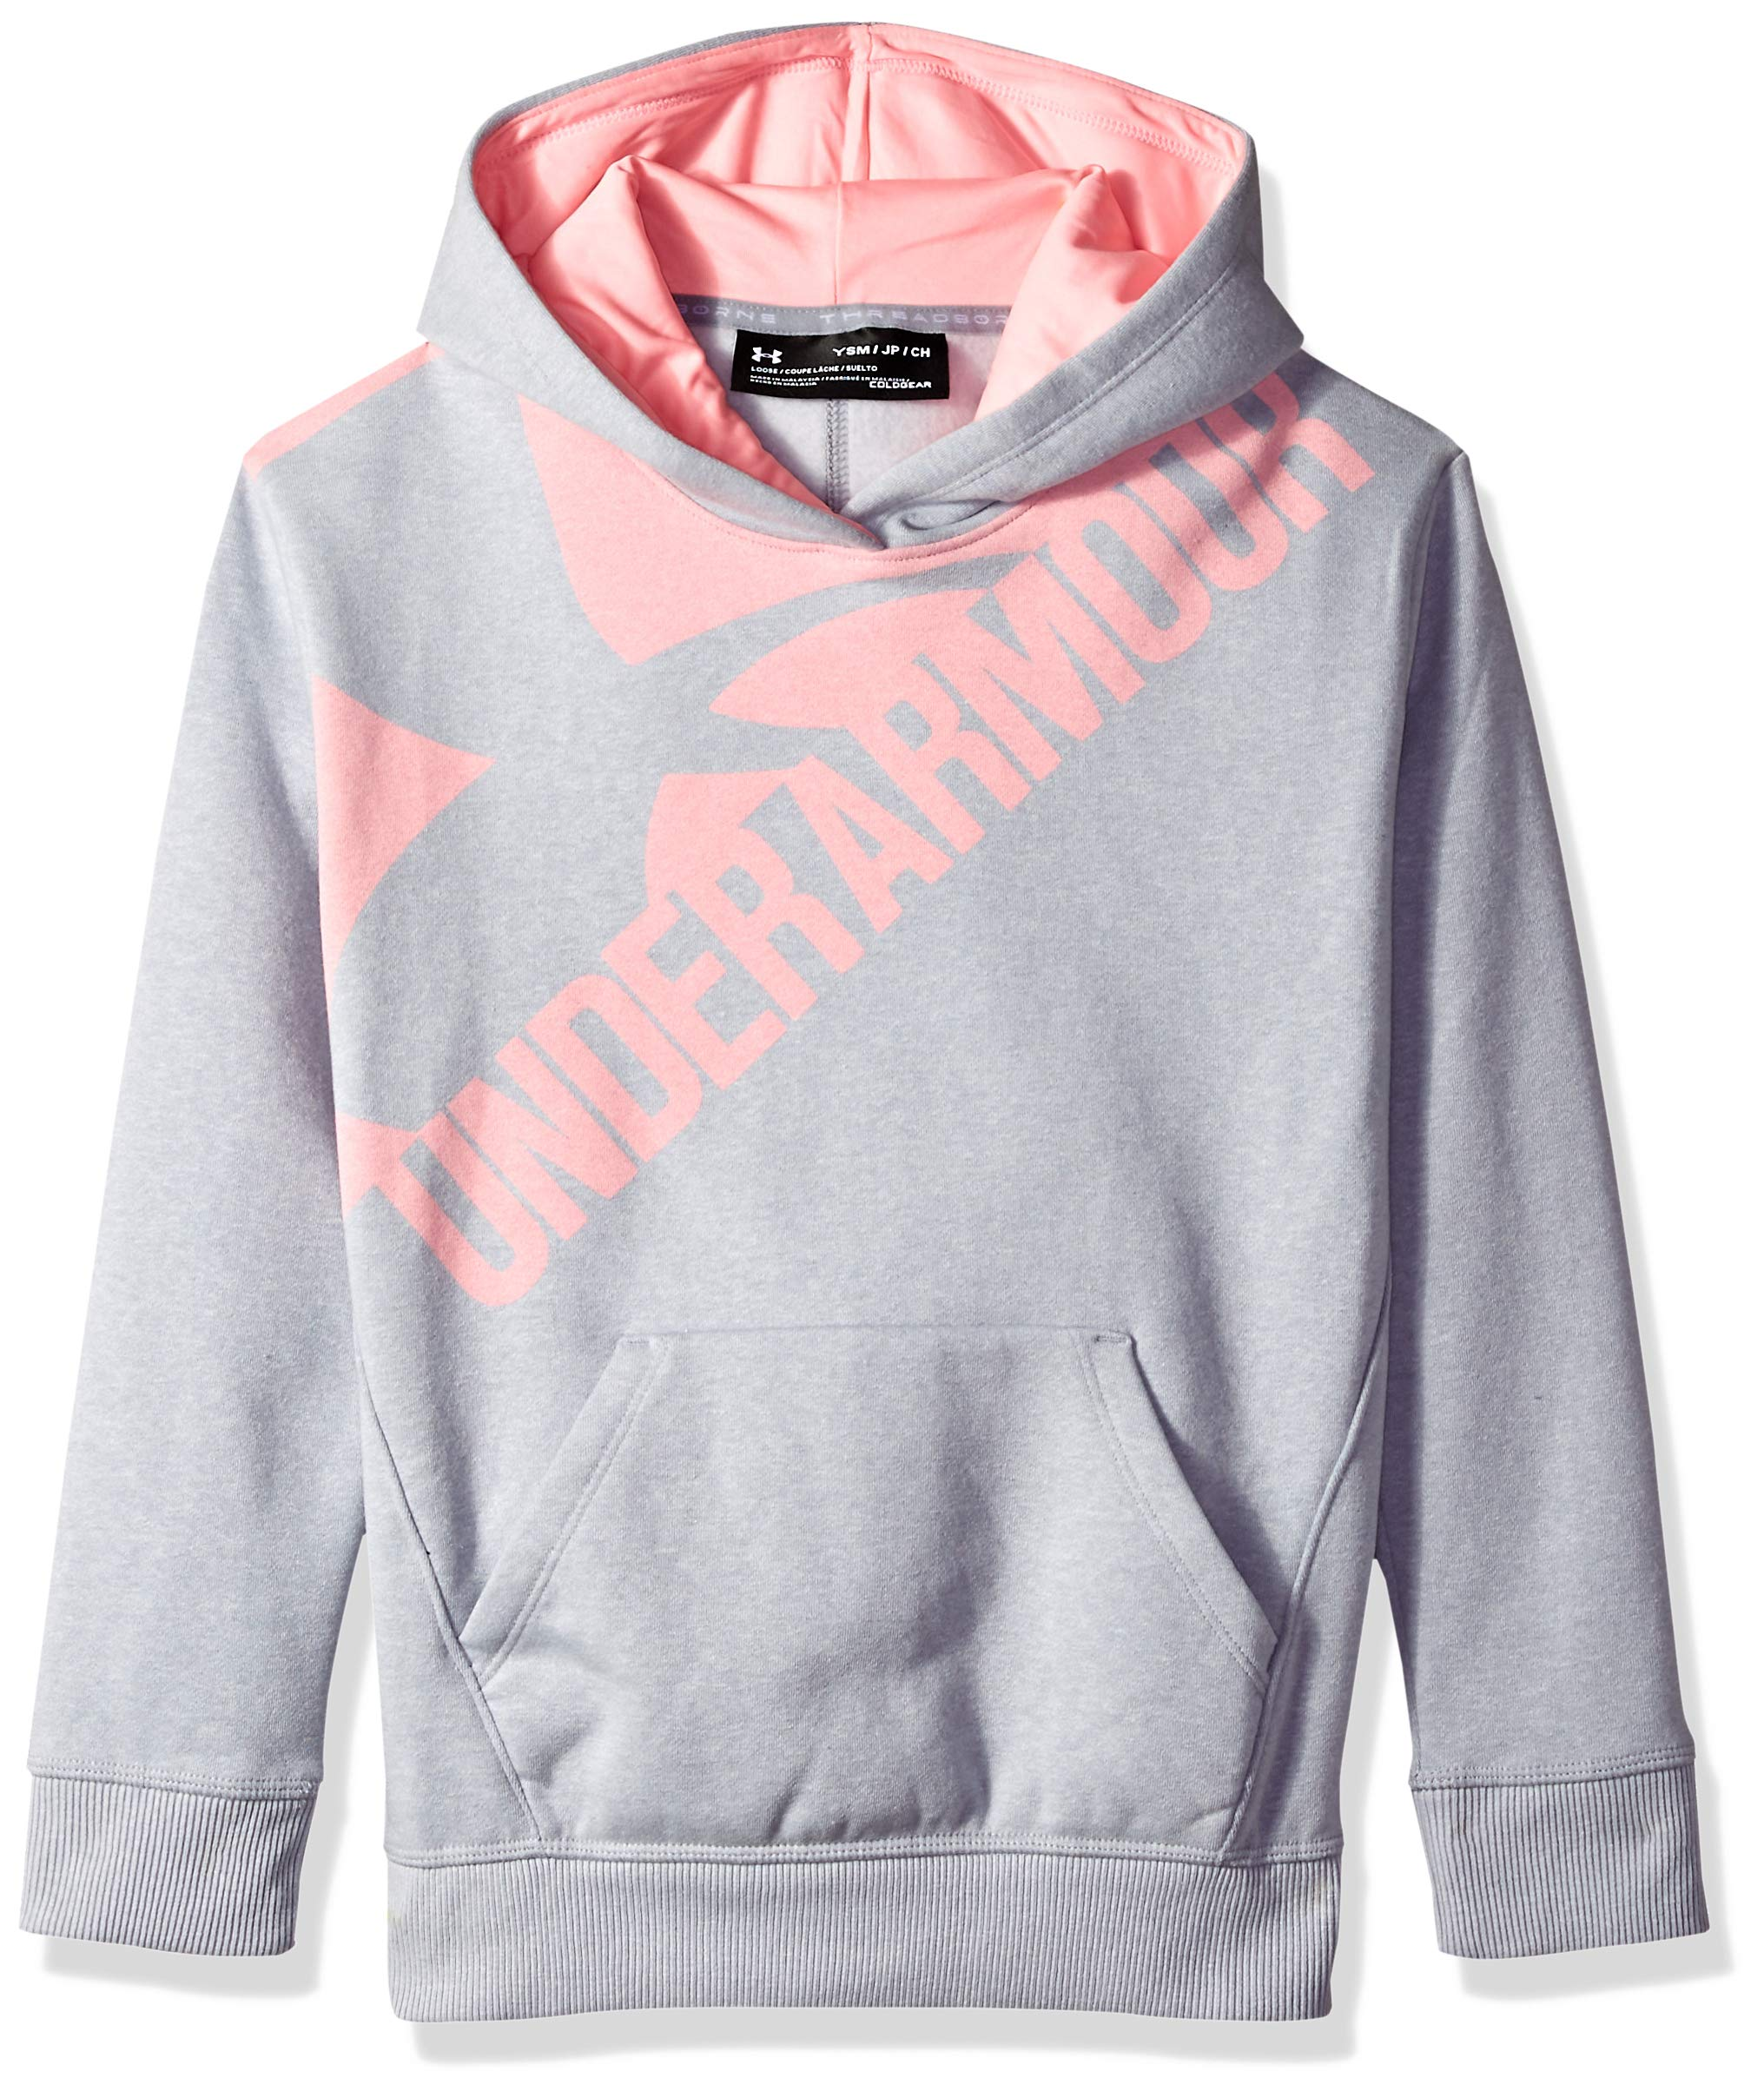 Under Armour Girls Threadborne Novelty Fleece Hoodie,Overcast Gray /Pop Pink, Youth X-Small